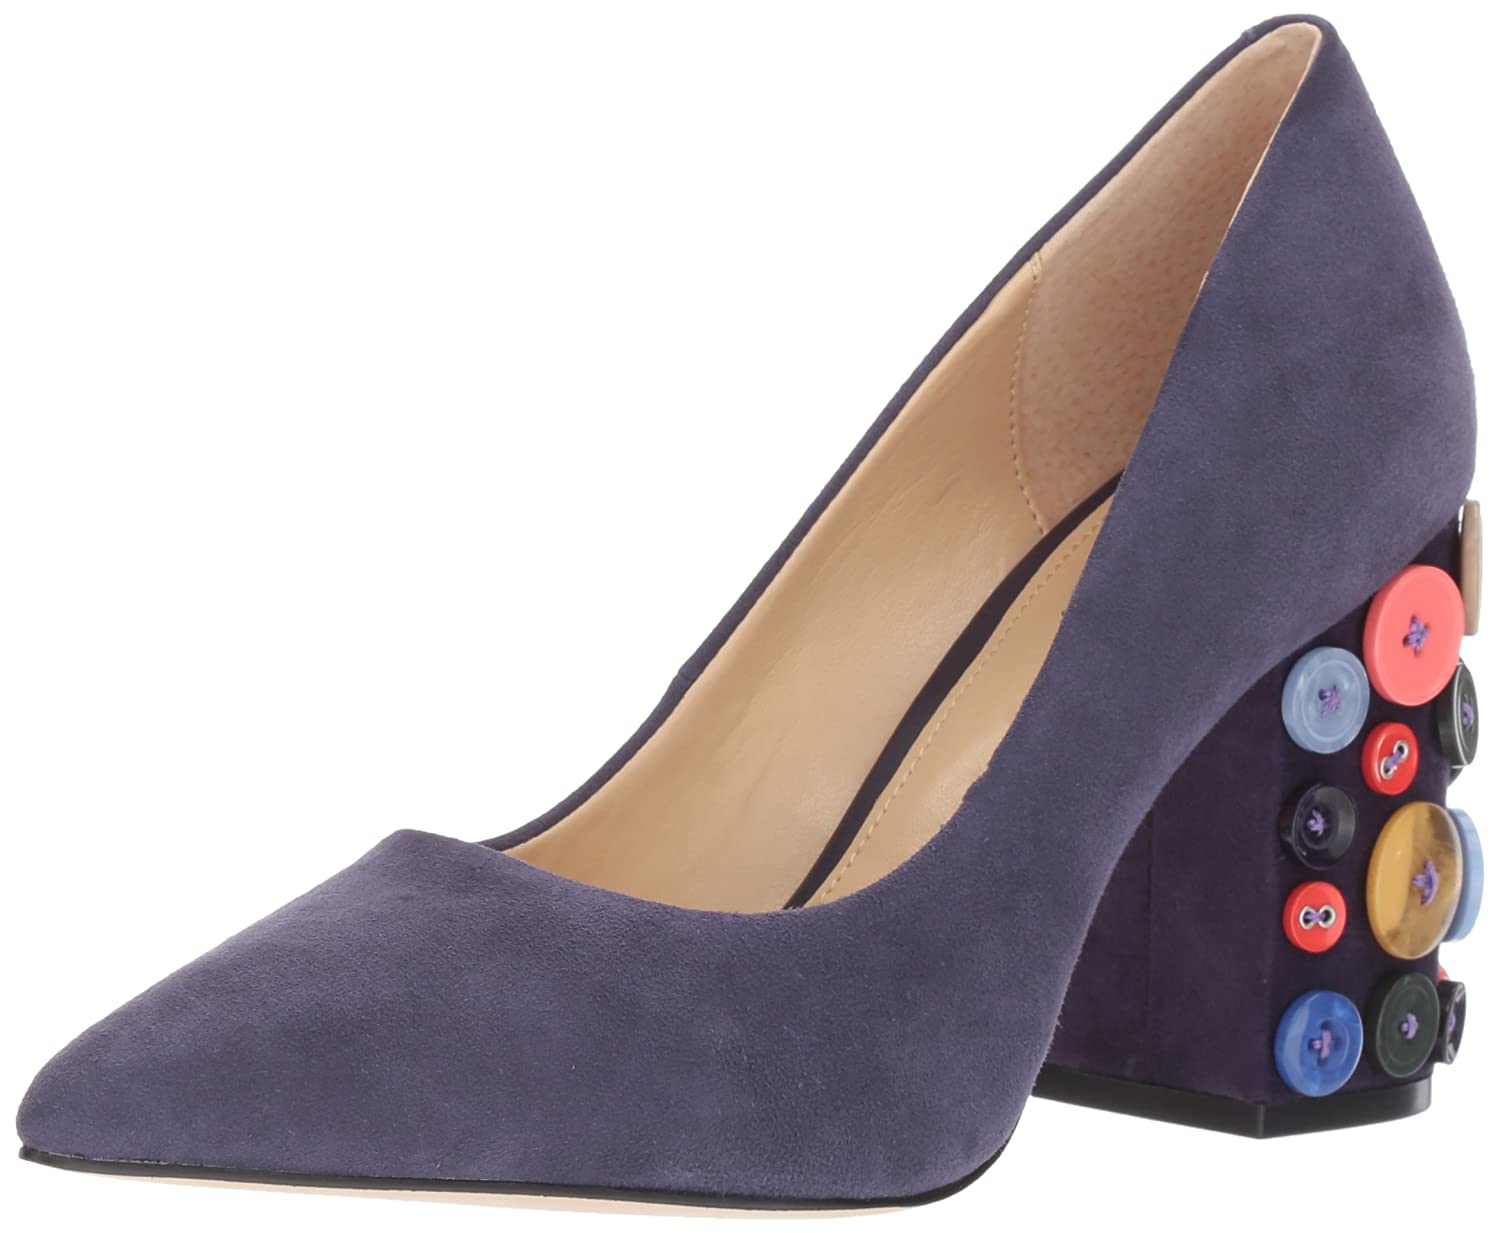 Katy Perry Women's The Anjelica Pump B06XCXX8G7 10 B(M) US|Eggplant